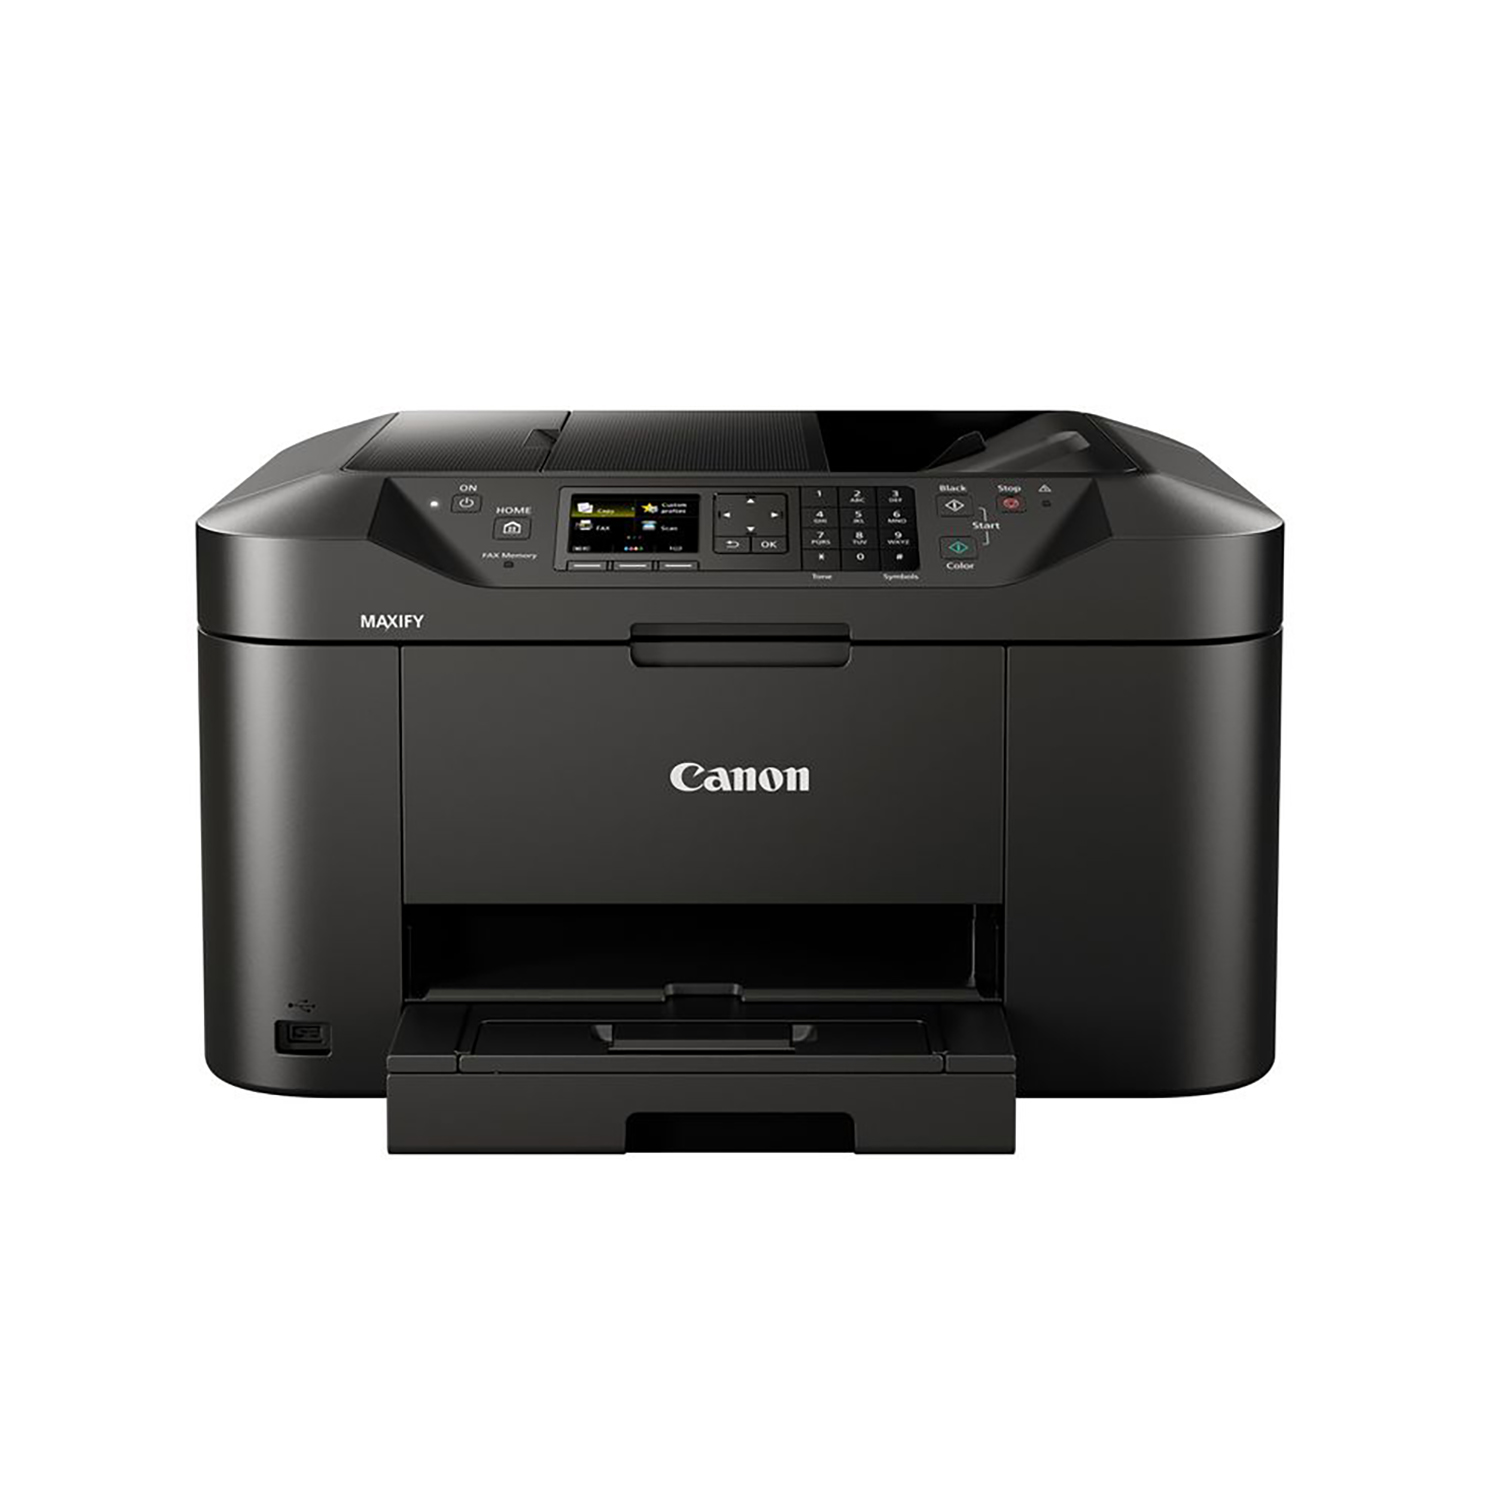 Multifunction Machines Canon Maxify MB2155 Multifunction Inkjet A4 Printer Black Ref 0959C028